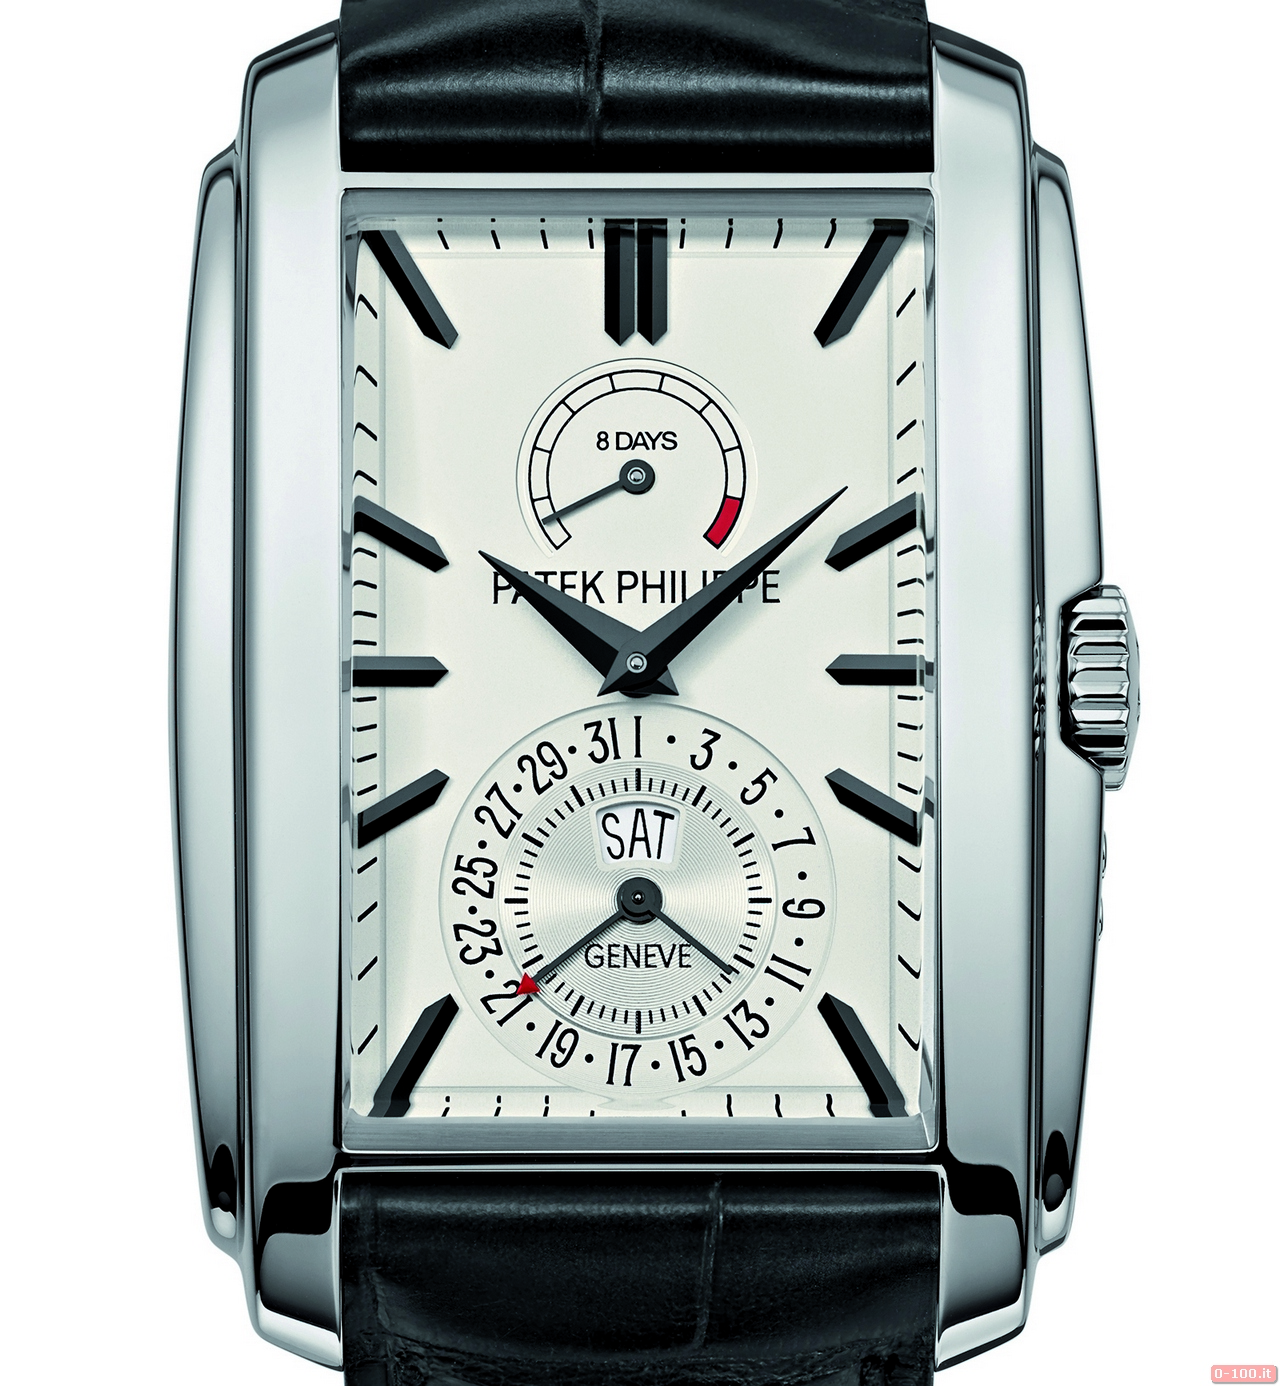 baselworld-2013-patek-philippe-gondolo-8-days-day-date-indication_0-100_3